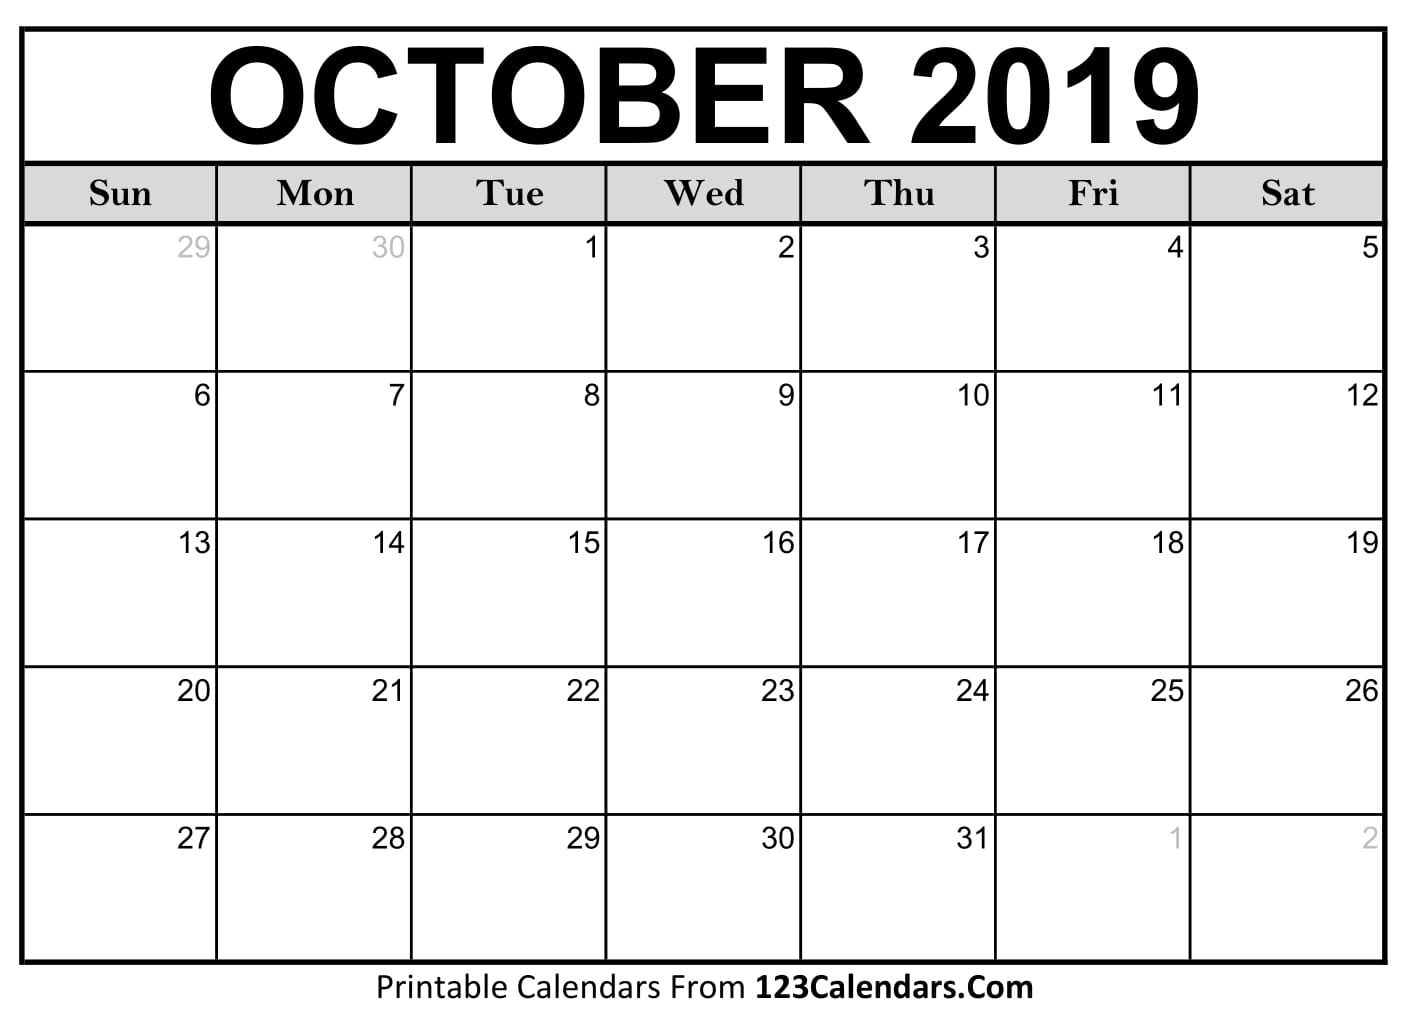 picture relating to Printable Calendars identified as Oct 2019 Printable Calendar